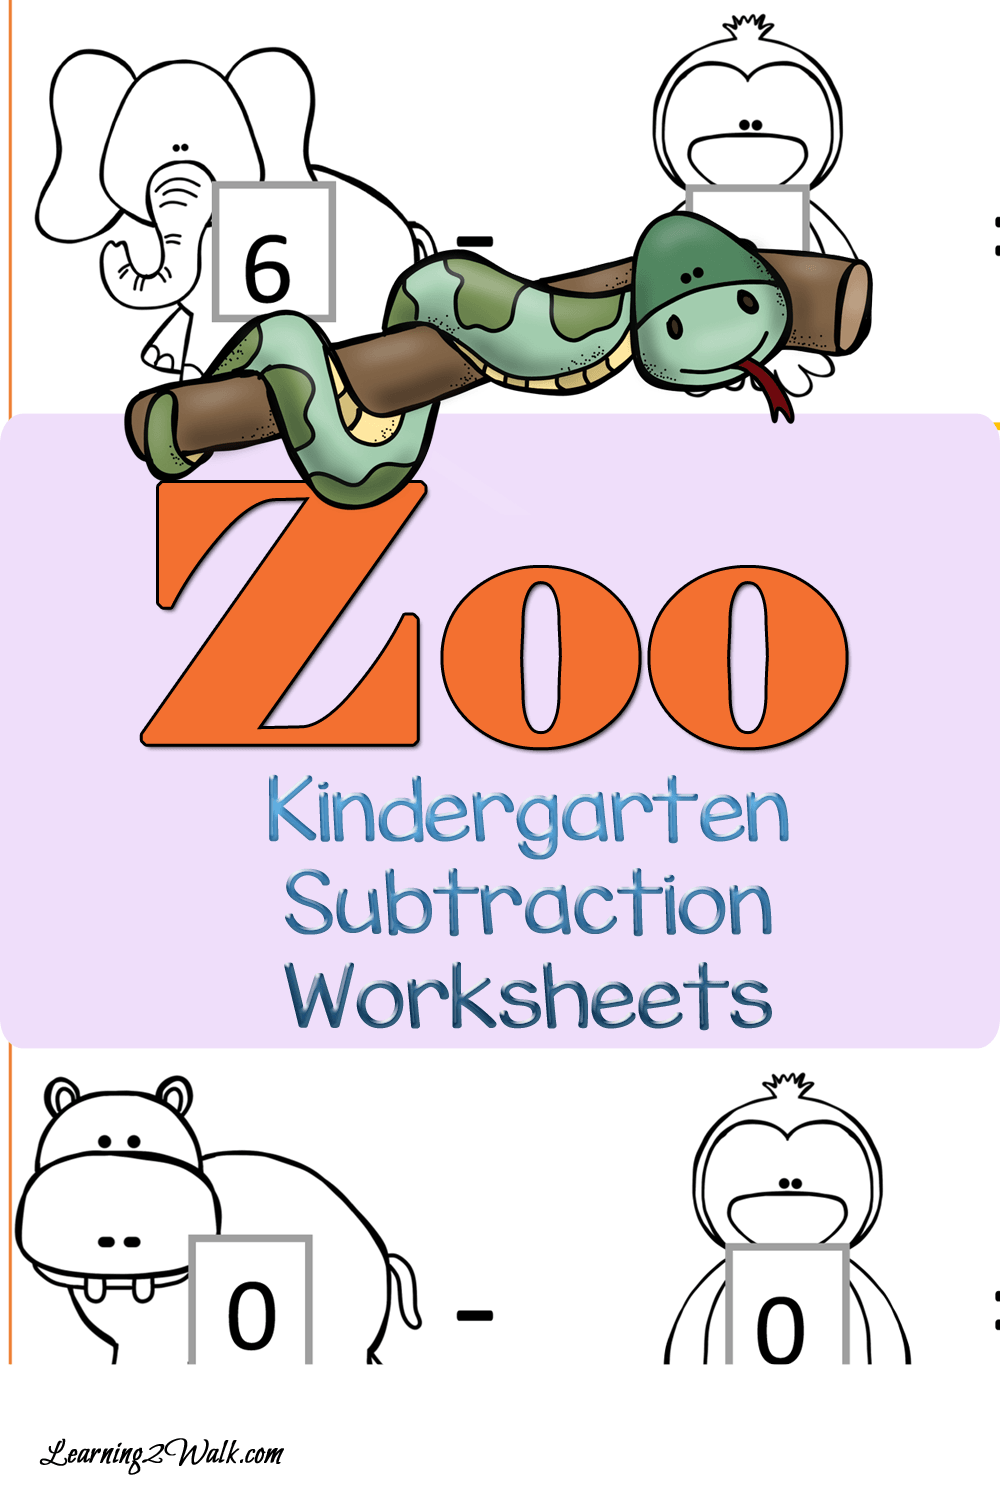 Zoo Kindergarten Subtraction Worksheets | Subtraction worksheets ...